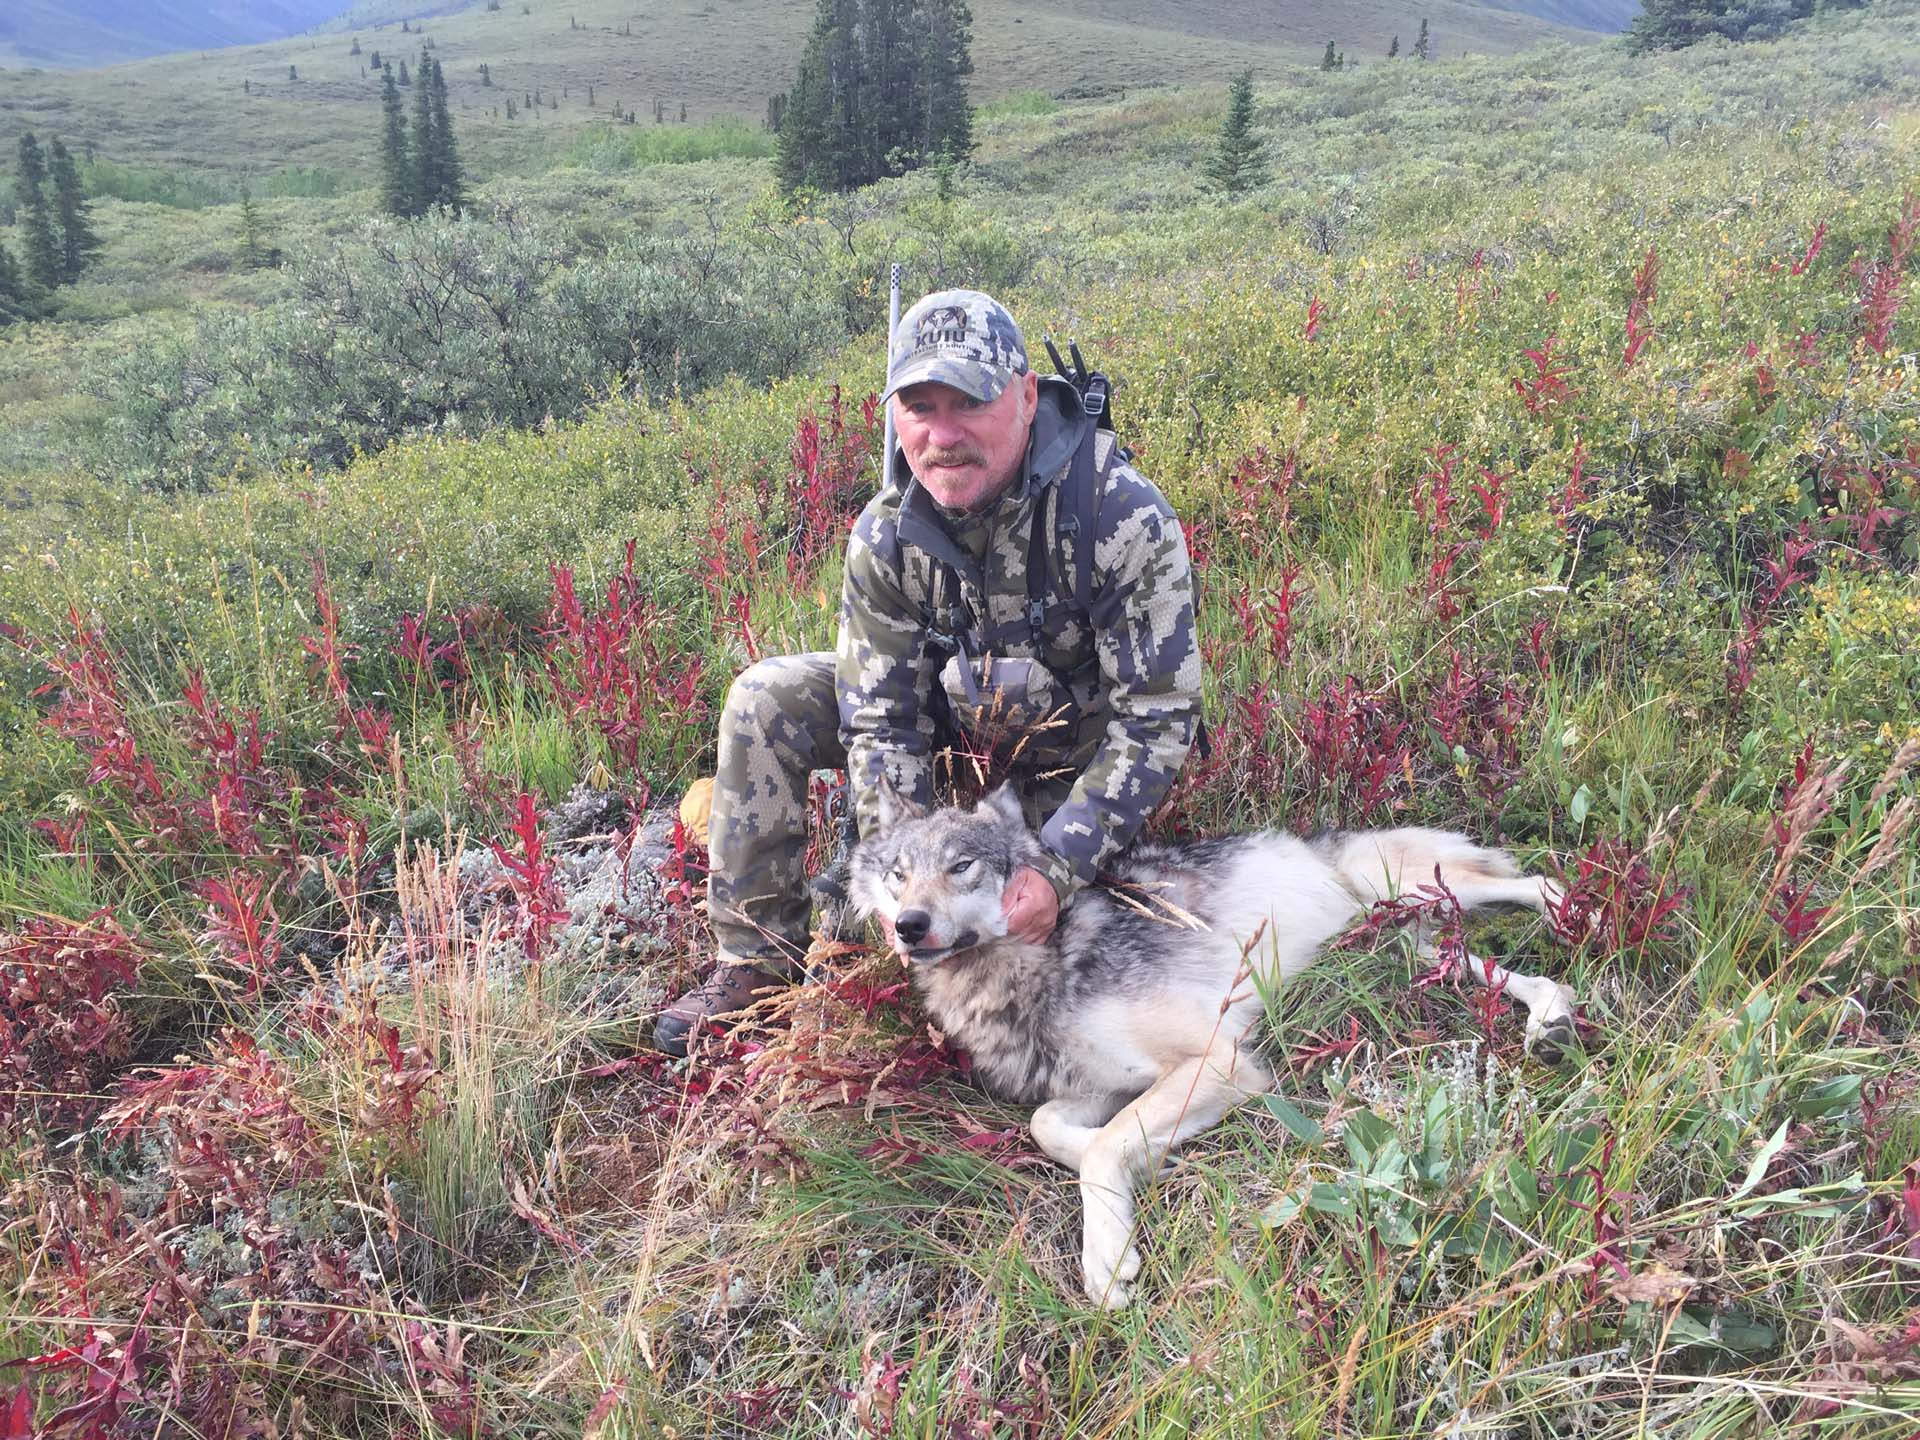 Hunting for other species in the Yukon - wolf, black bear, wolverine